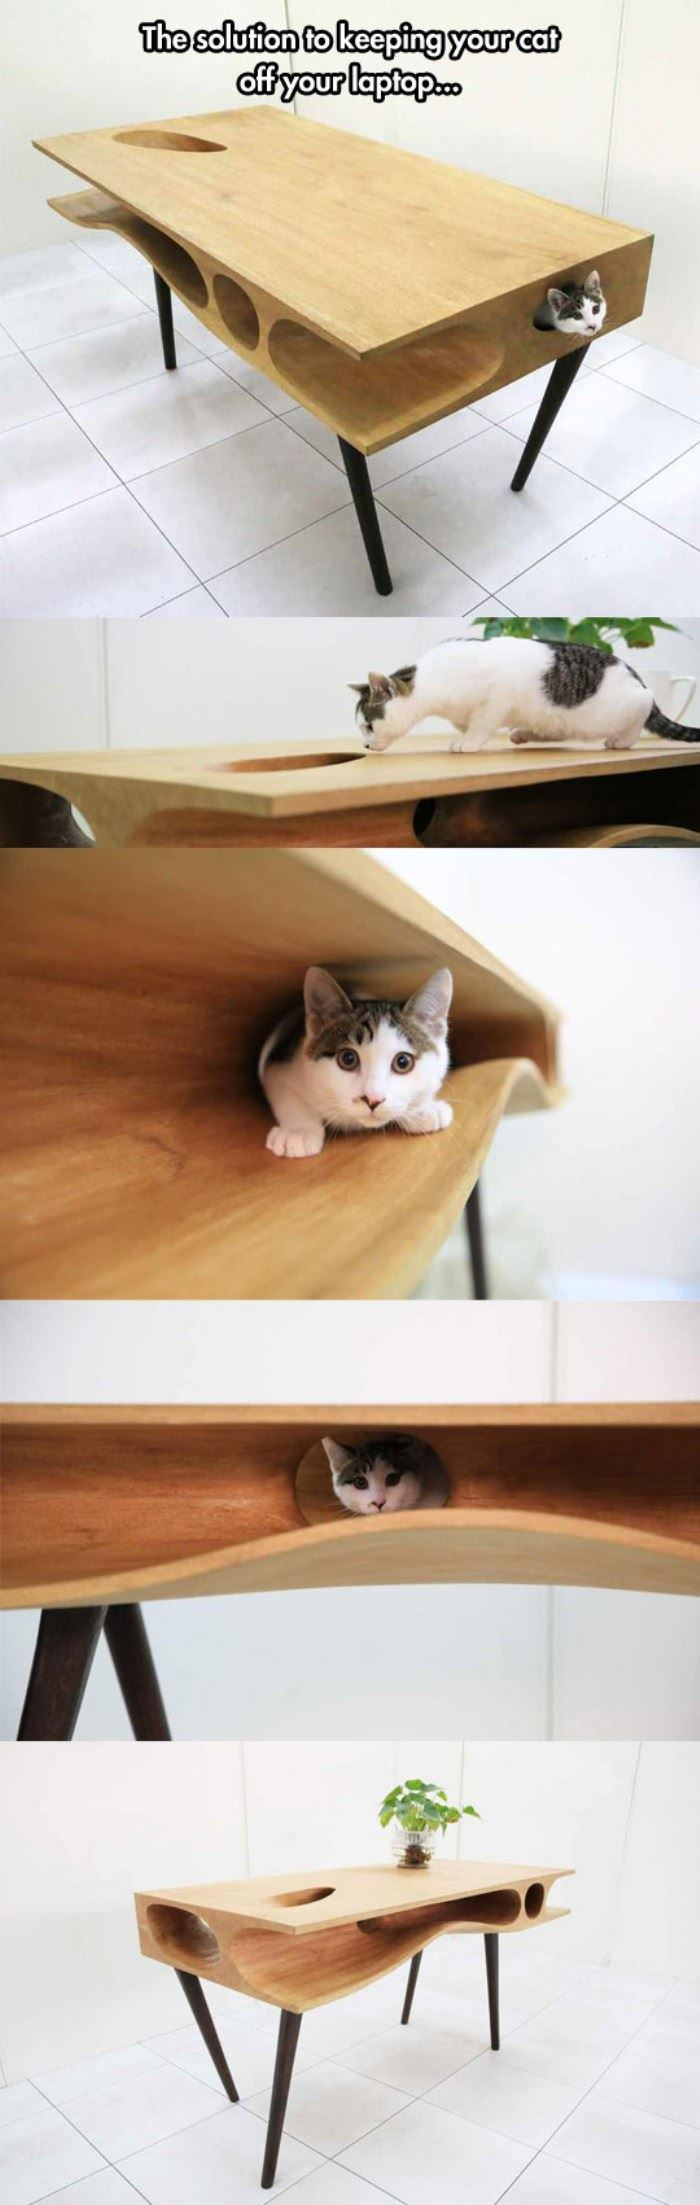 epic cat table funny picture